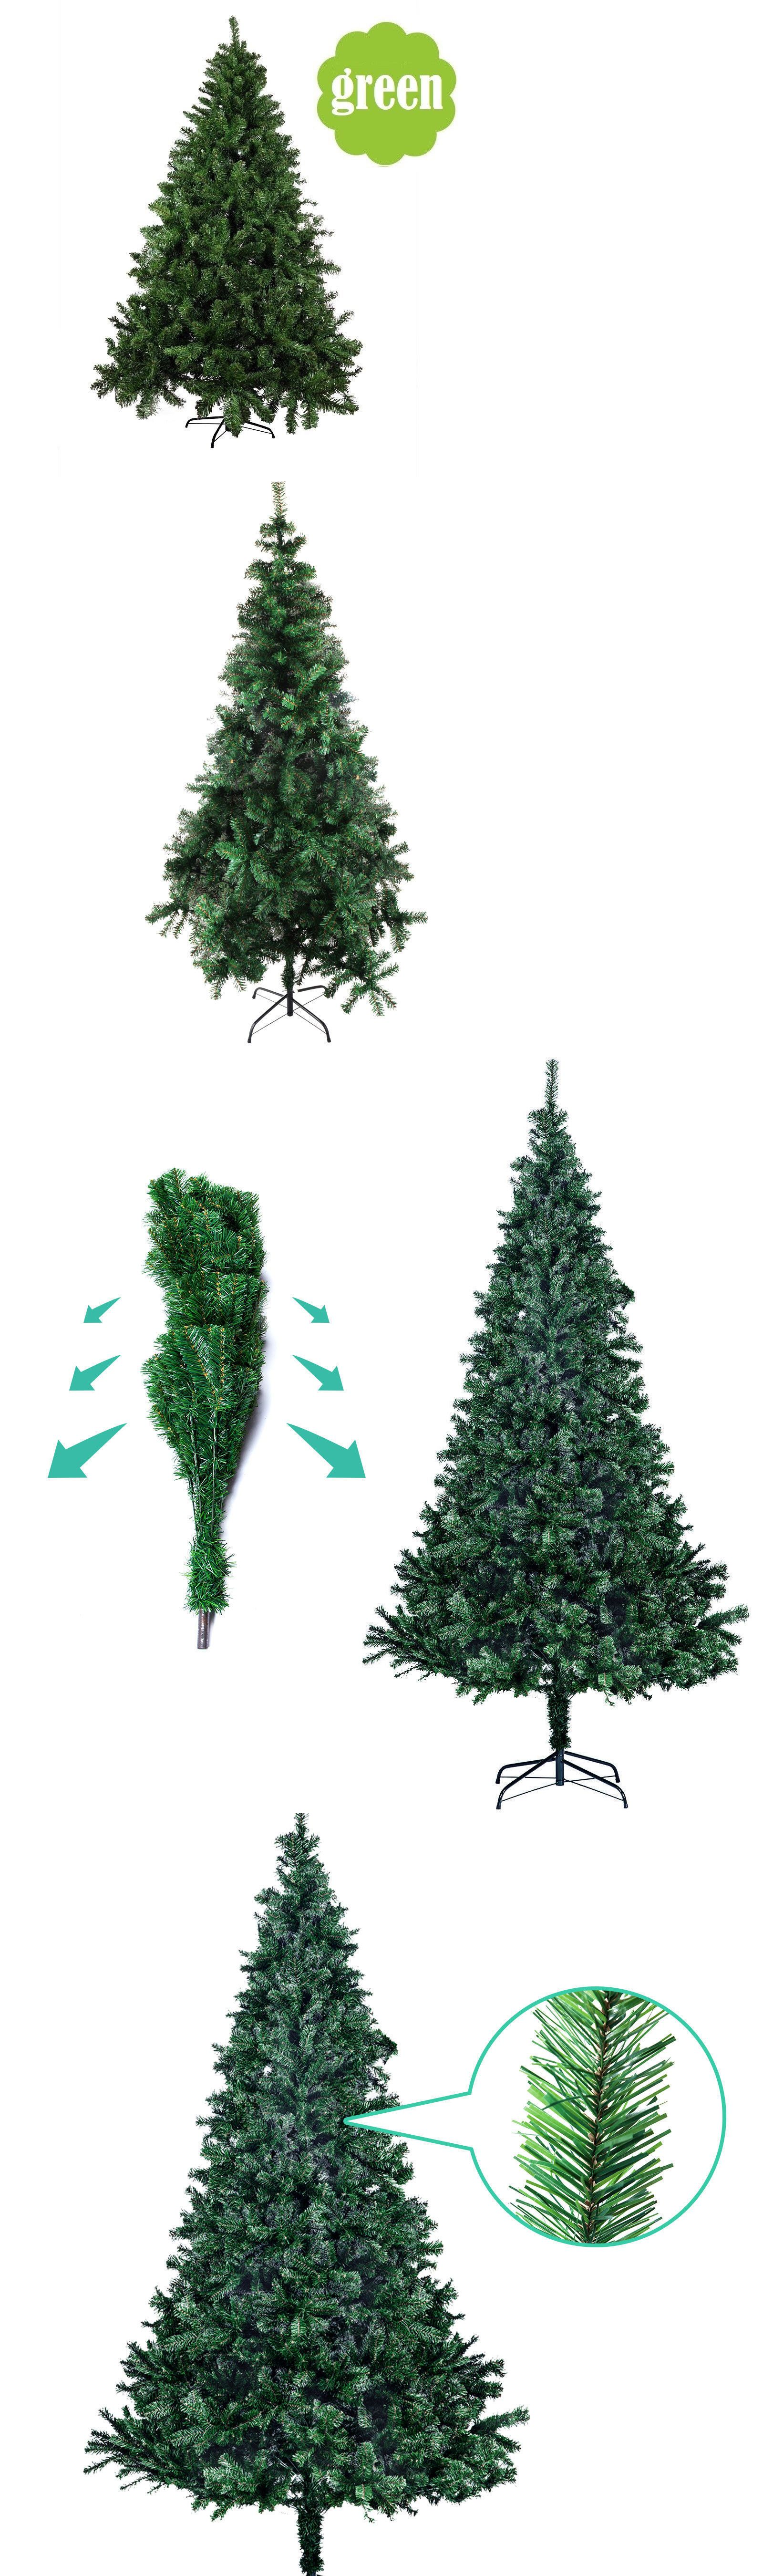 5 6 7 8ft Green Pvc Artificial Christmas Holiday Tree W Stand Small Big Holiday Tree Christmas Holidays Artificial Christmas Tree